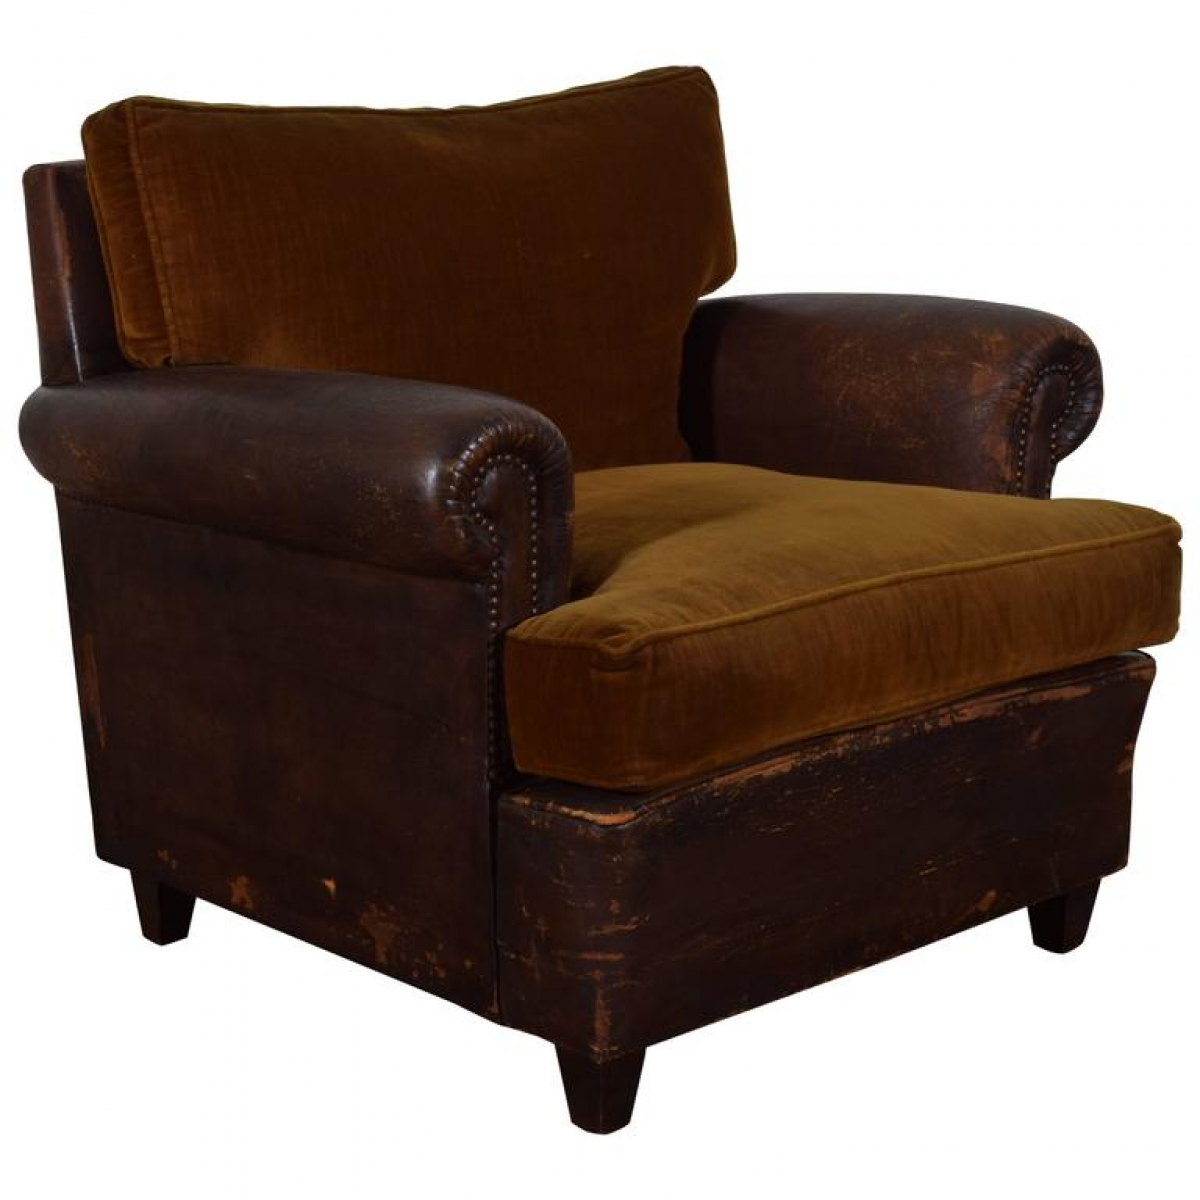 Velvet Club Chair Leather Upholstered And Velvet Club Chair Robuck Co